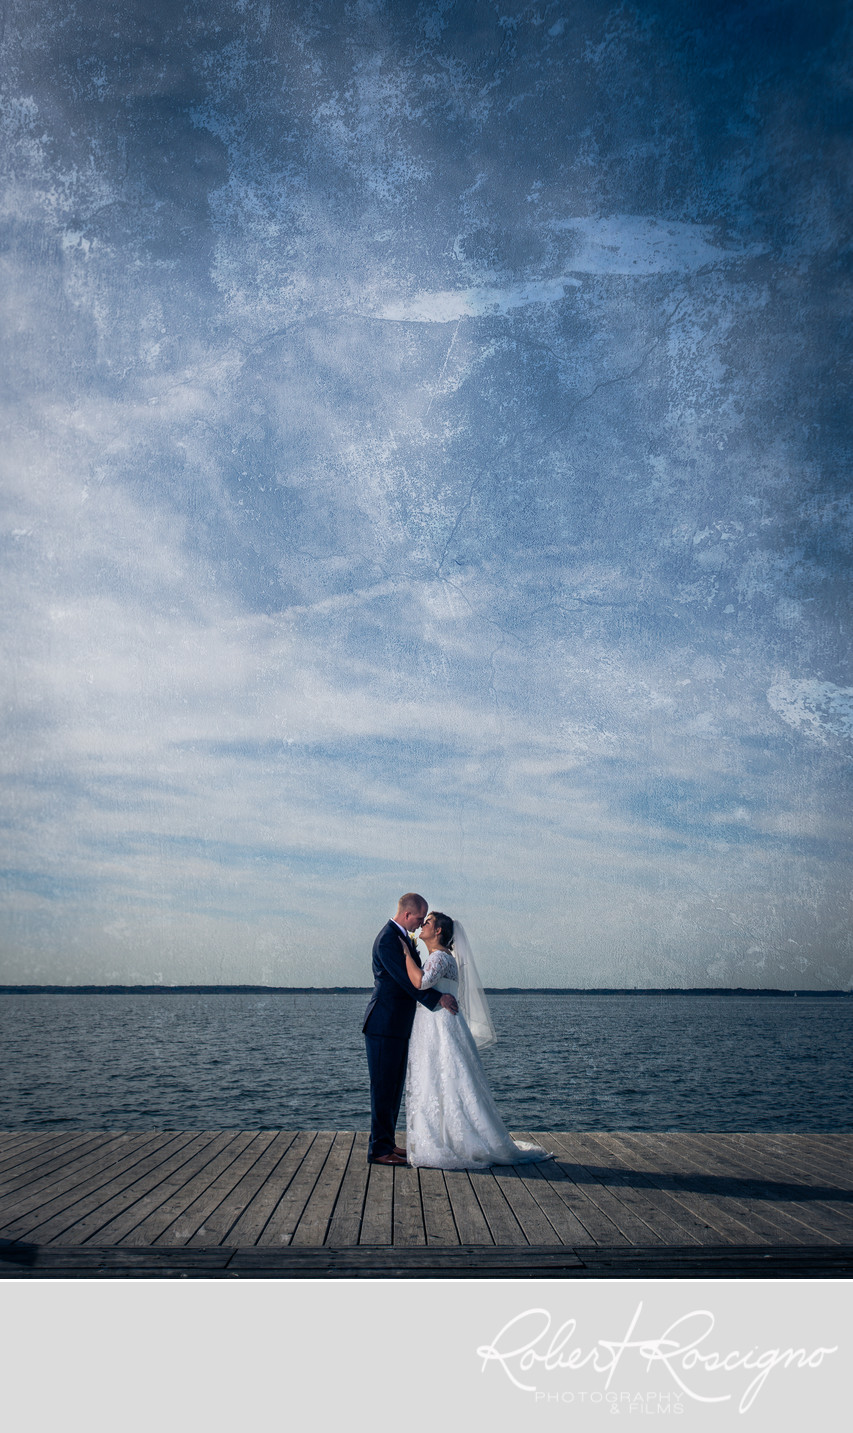 Lavallette-Pier-NJ-Wedding-Photographer-Robert-Roscigno